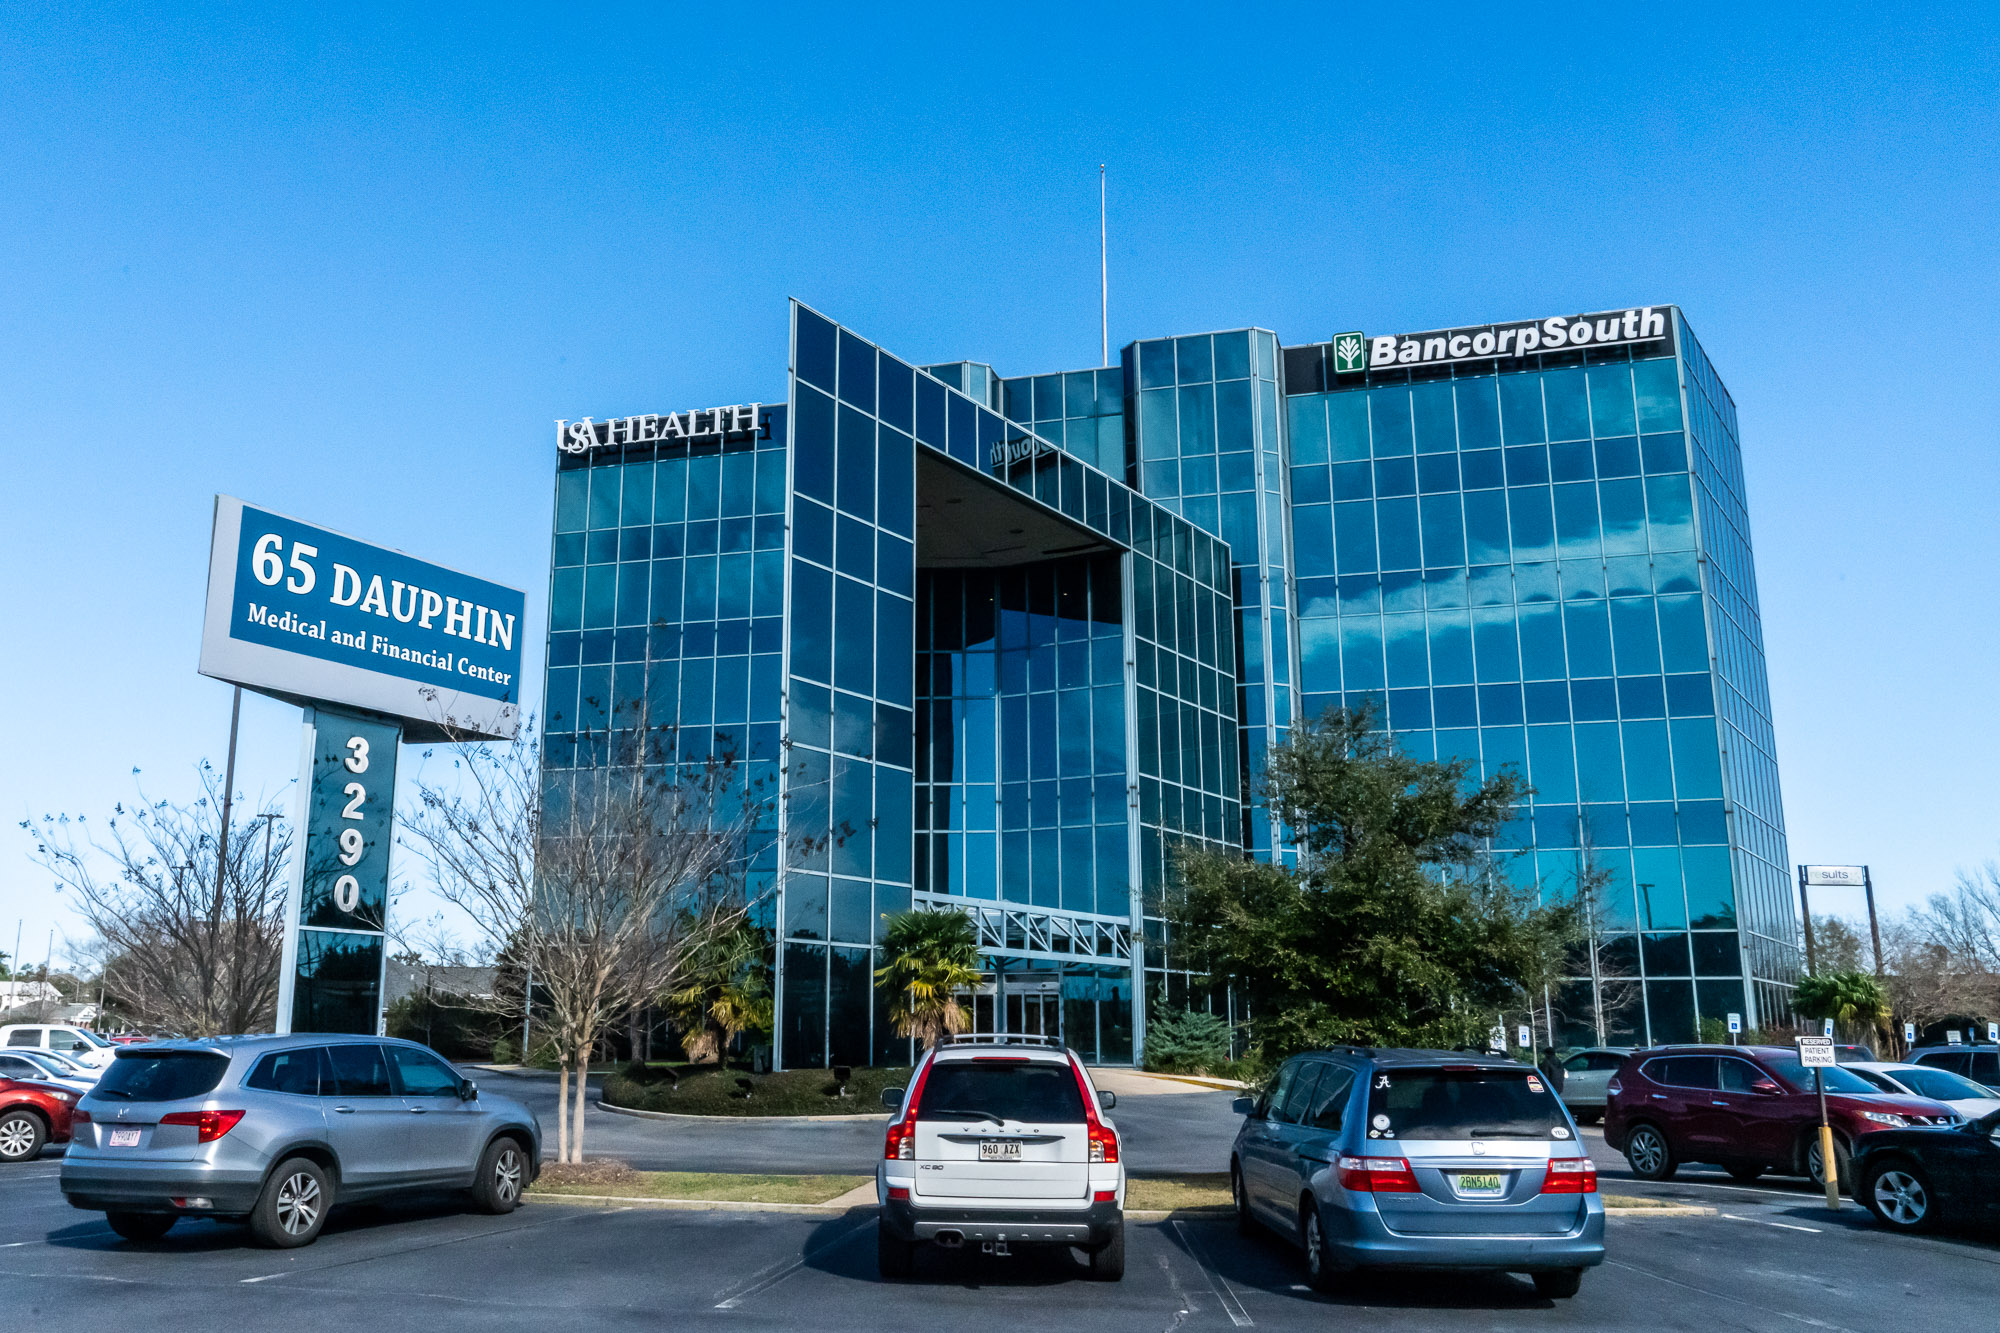 Dauphin and 65 Financial and Medical Center